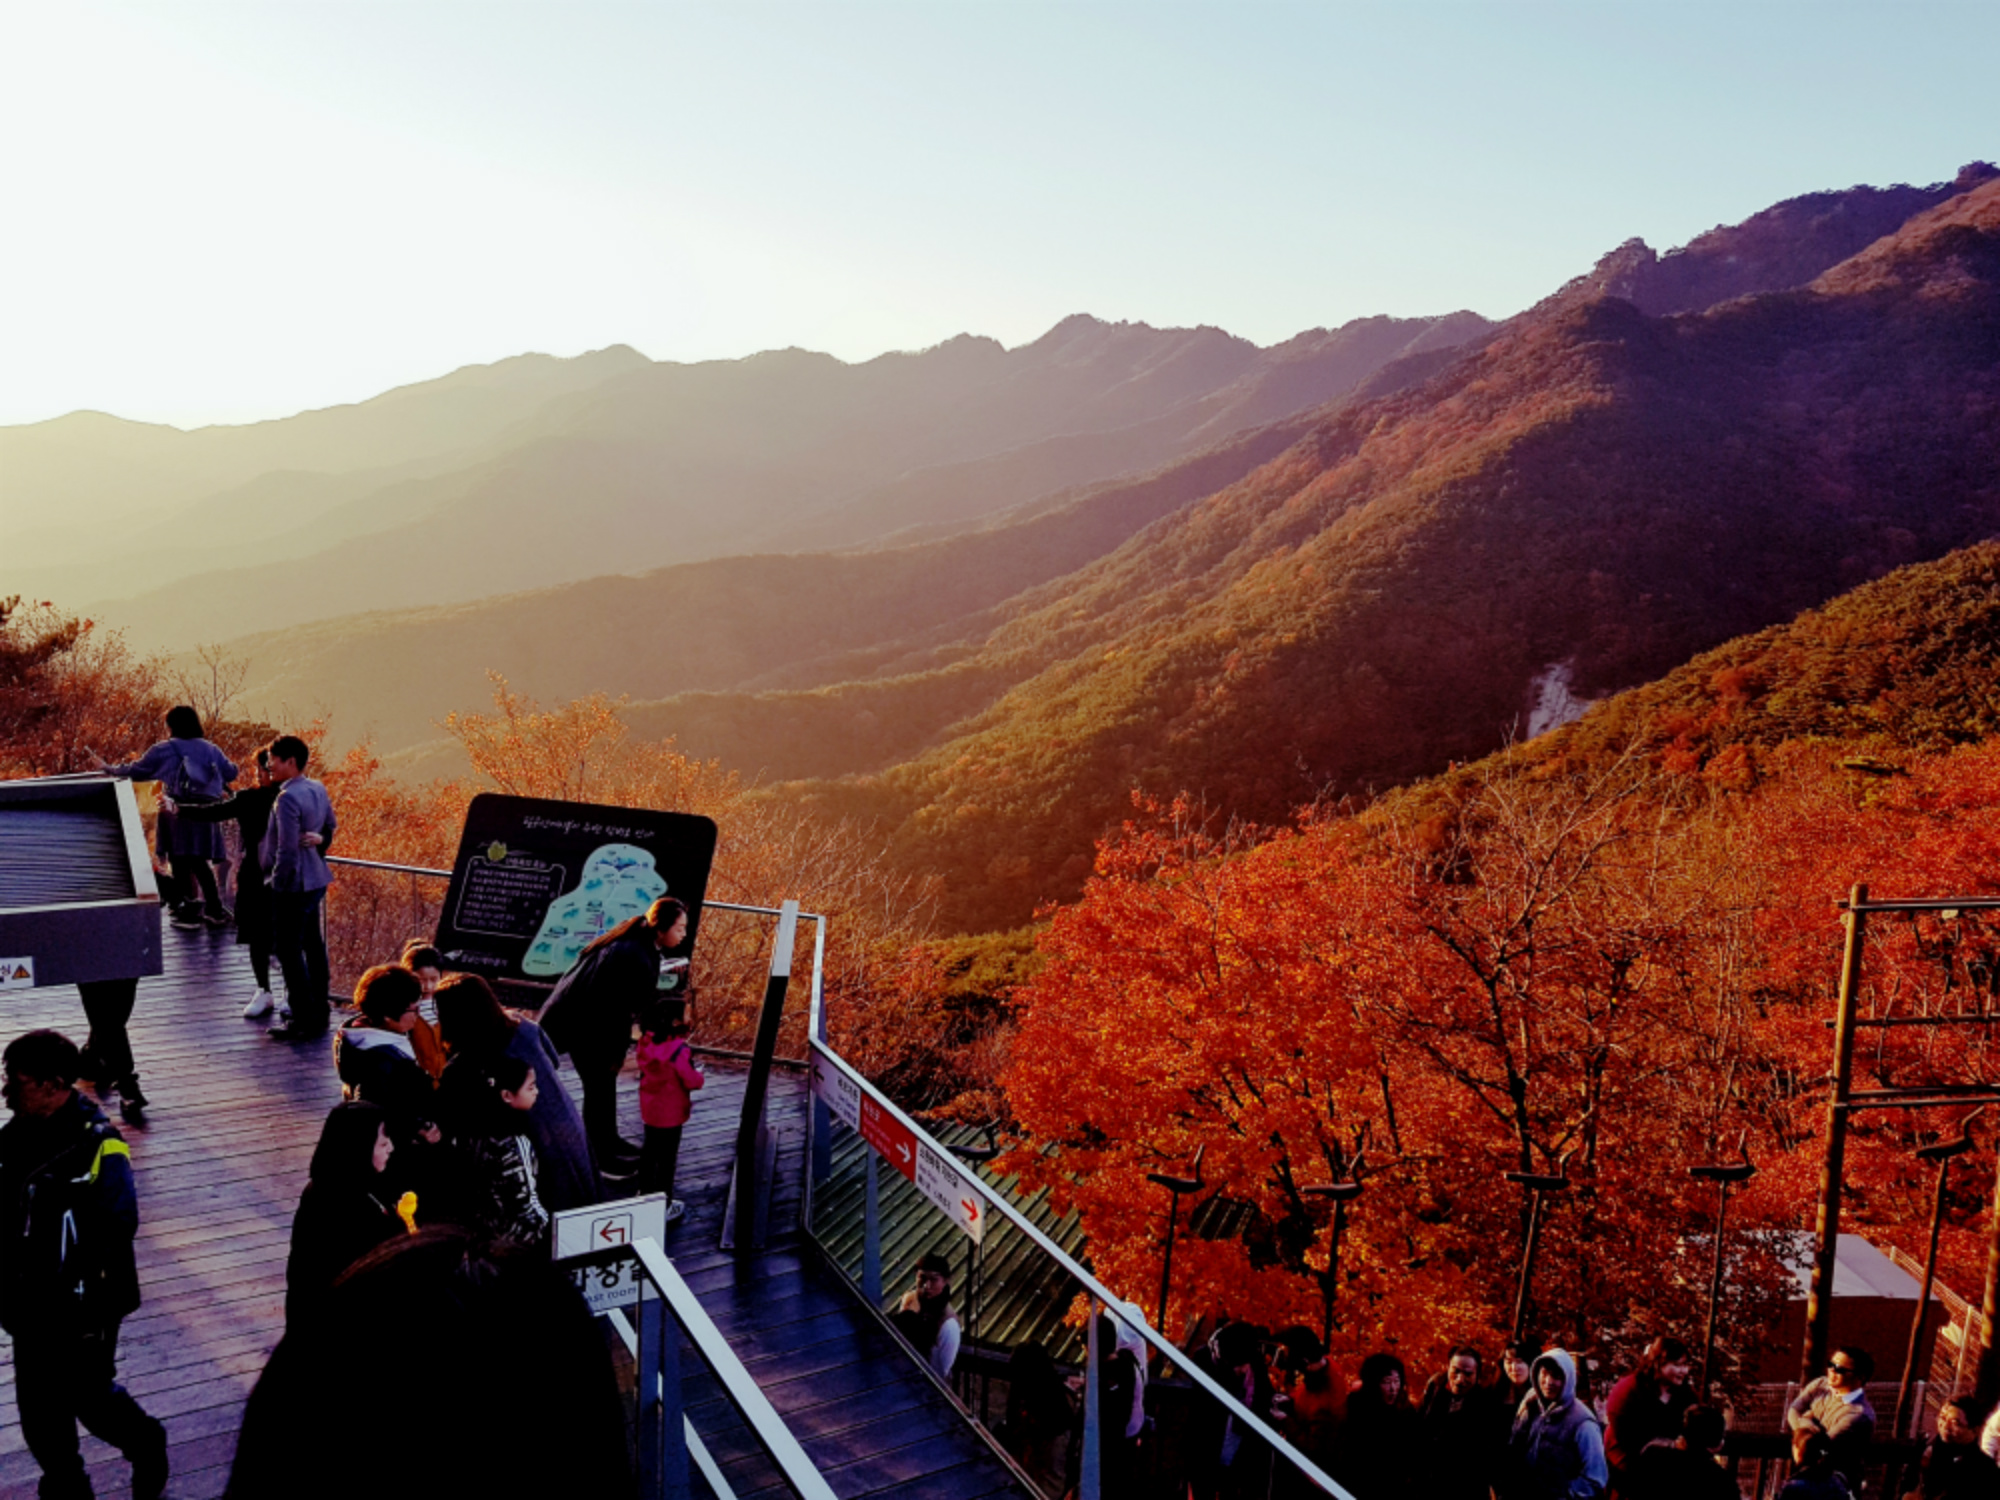 (Autumn) Palgongsan Natural Park Foliage One Day Tour